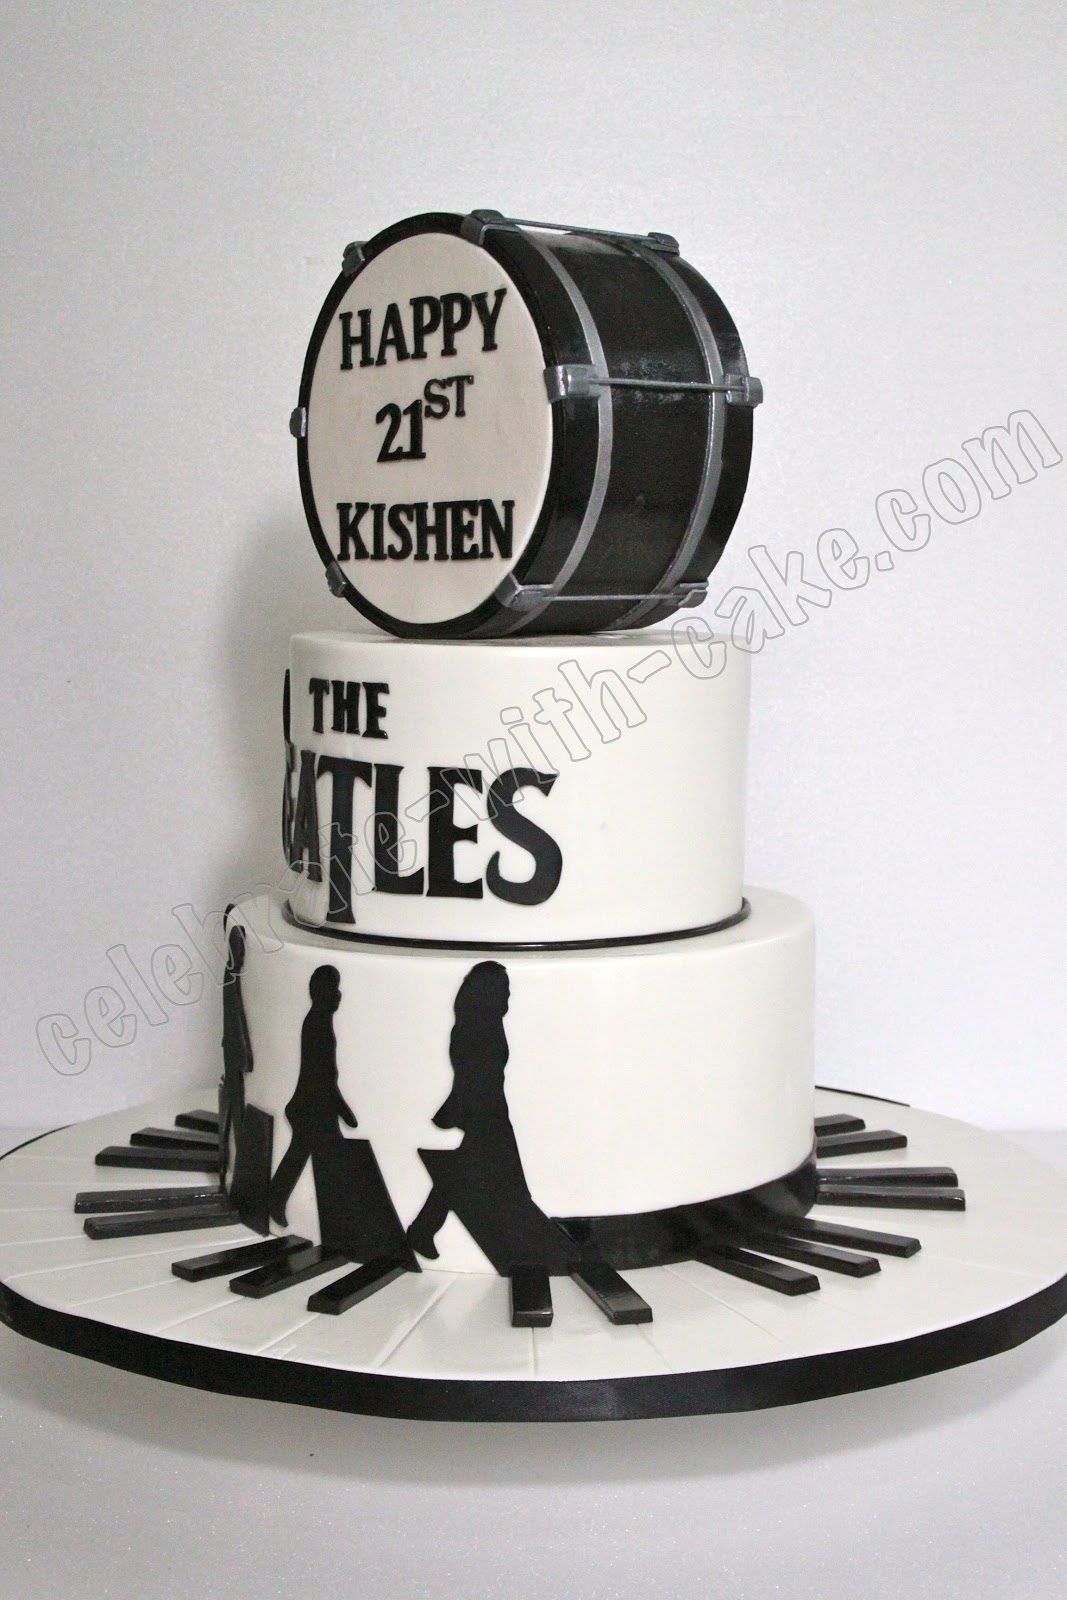 The Beatles Tier Cake